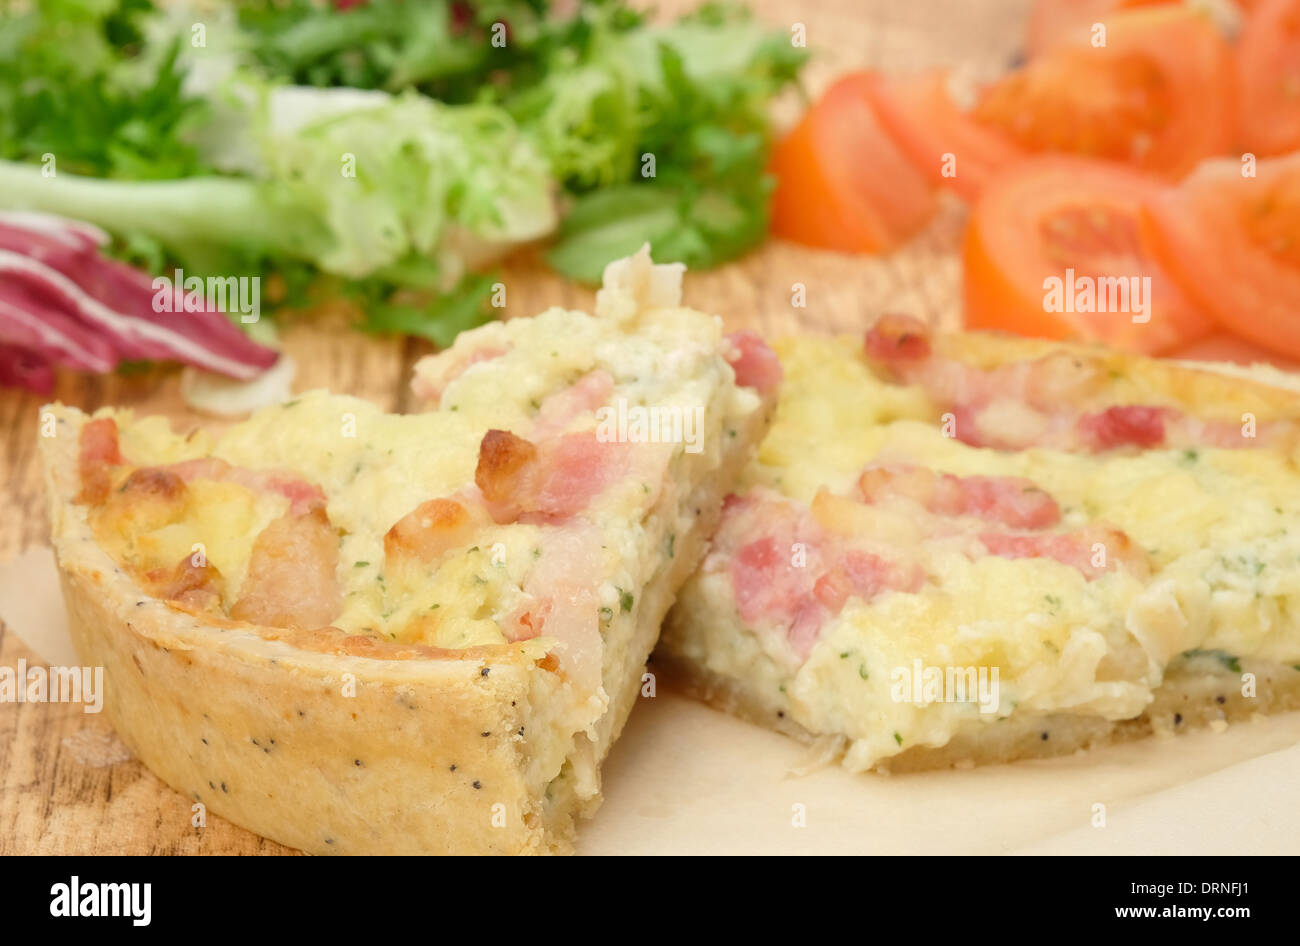 Cheese and bacon Quiche Lorraine - studio shot - Stock Image